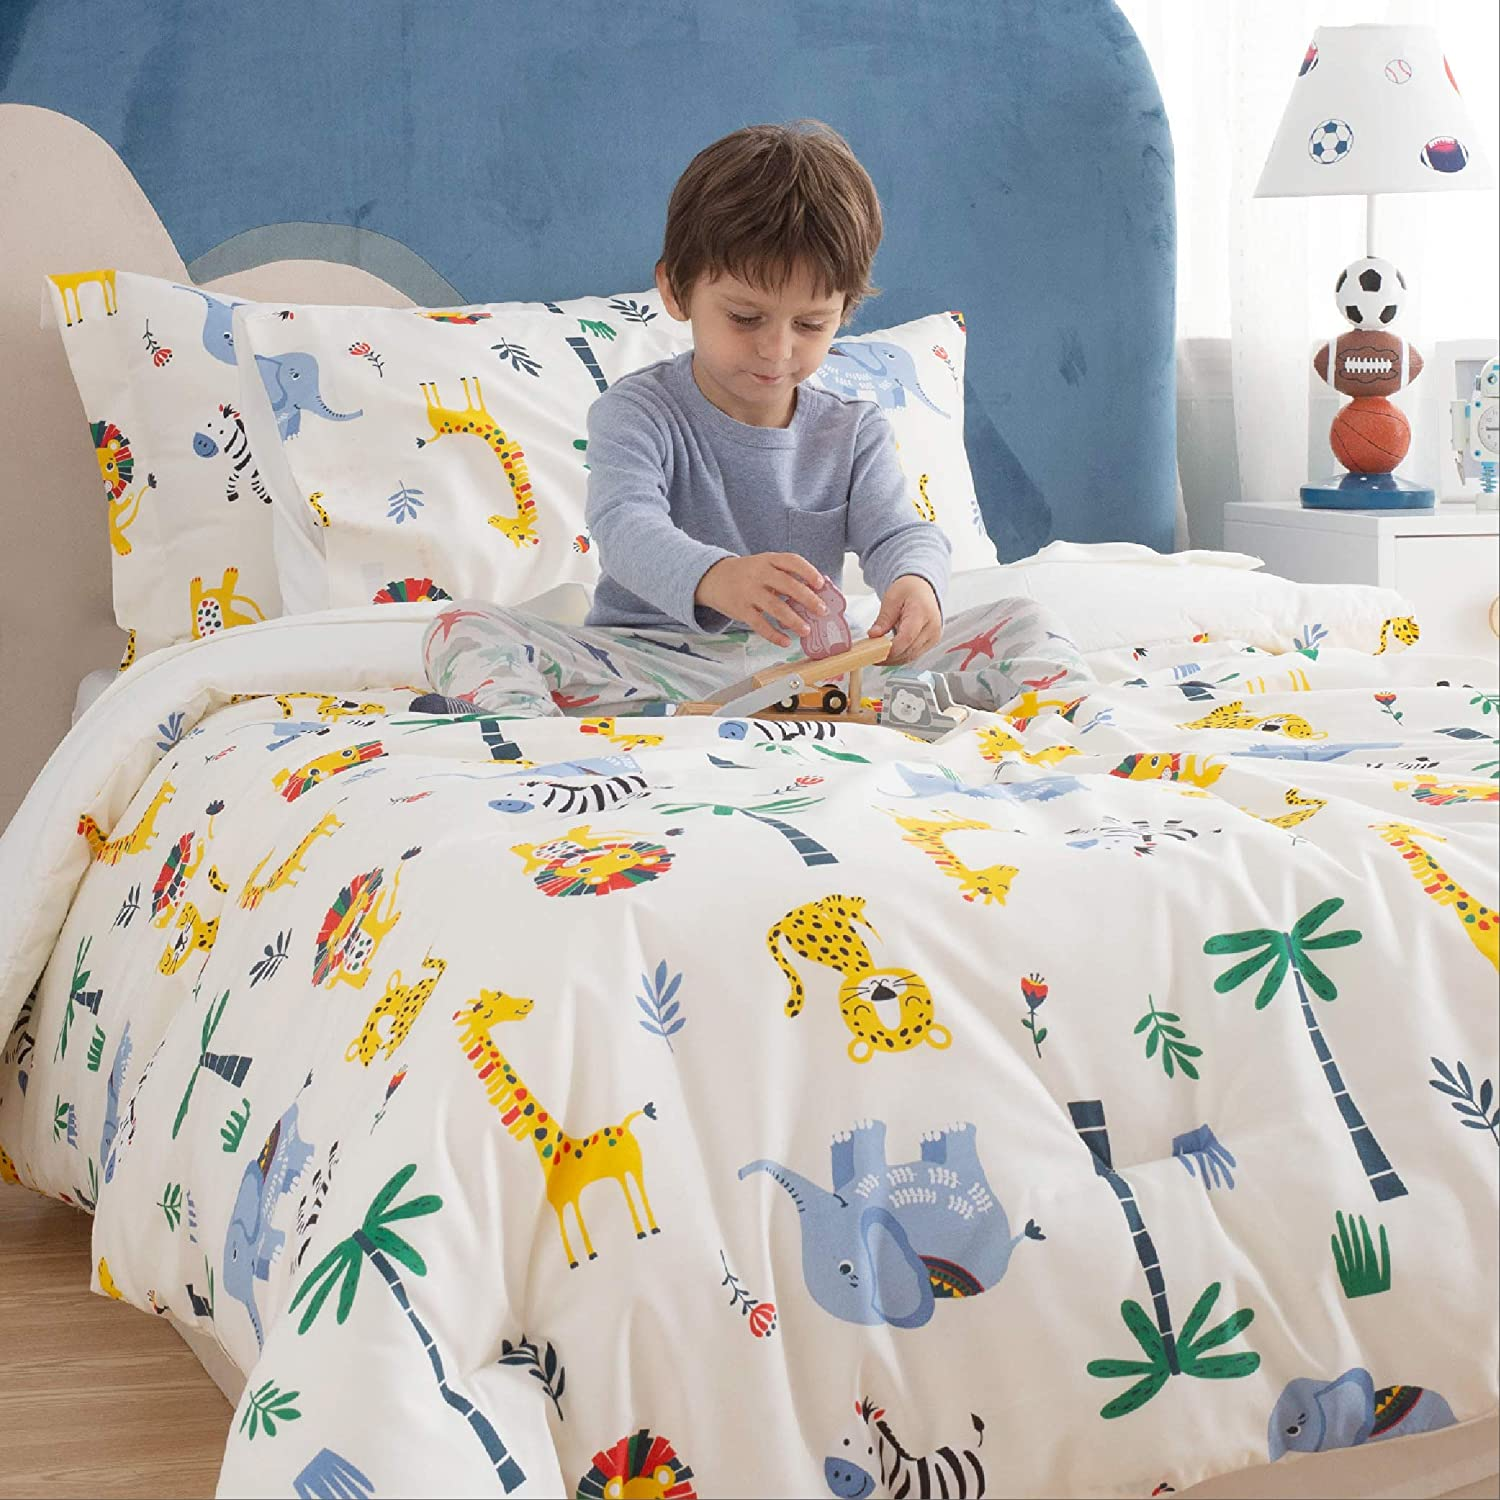 5 Pieces Bed in a Bag Multi-Color Safari Zoo Animals Bedding Easy Care Super Soft Microfiber Comforter and Sheets Set Cream White,Twin Bedsure Kids Twin Bedding Sets for Boys